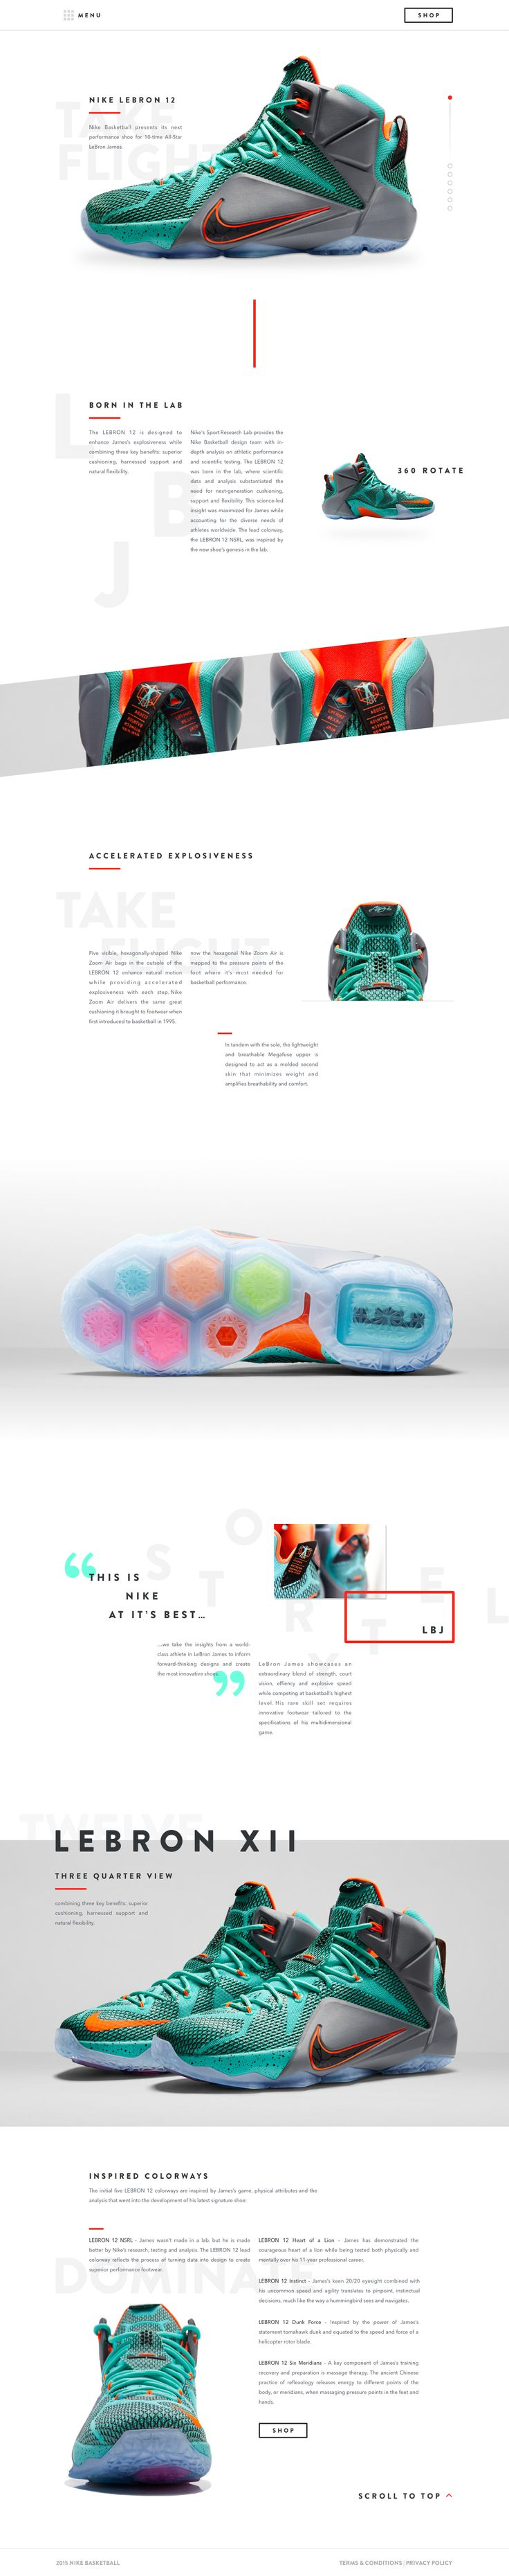 Nike product page design: